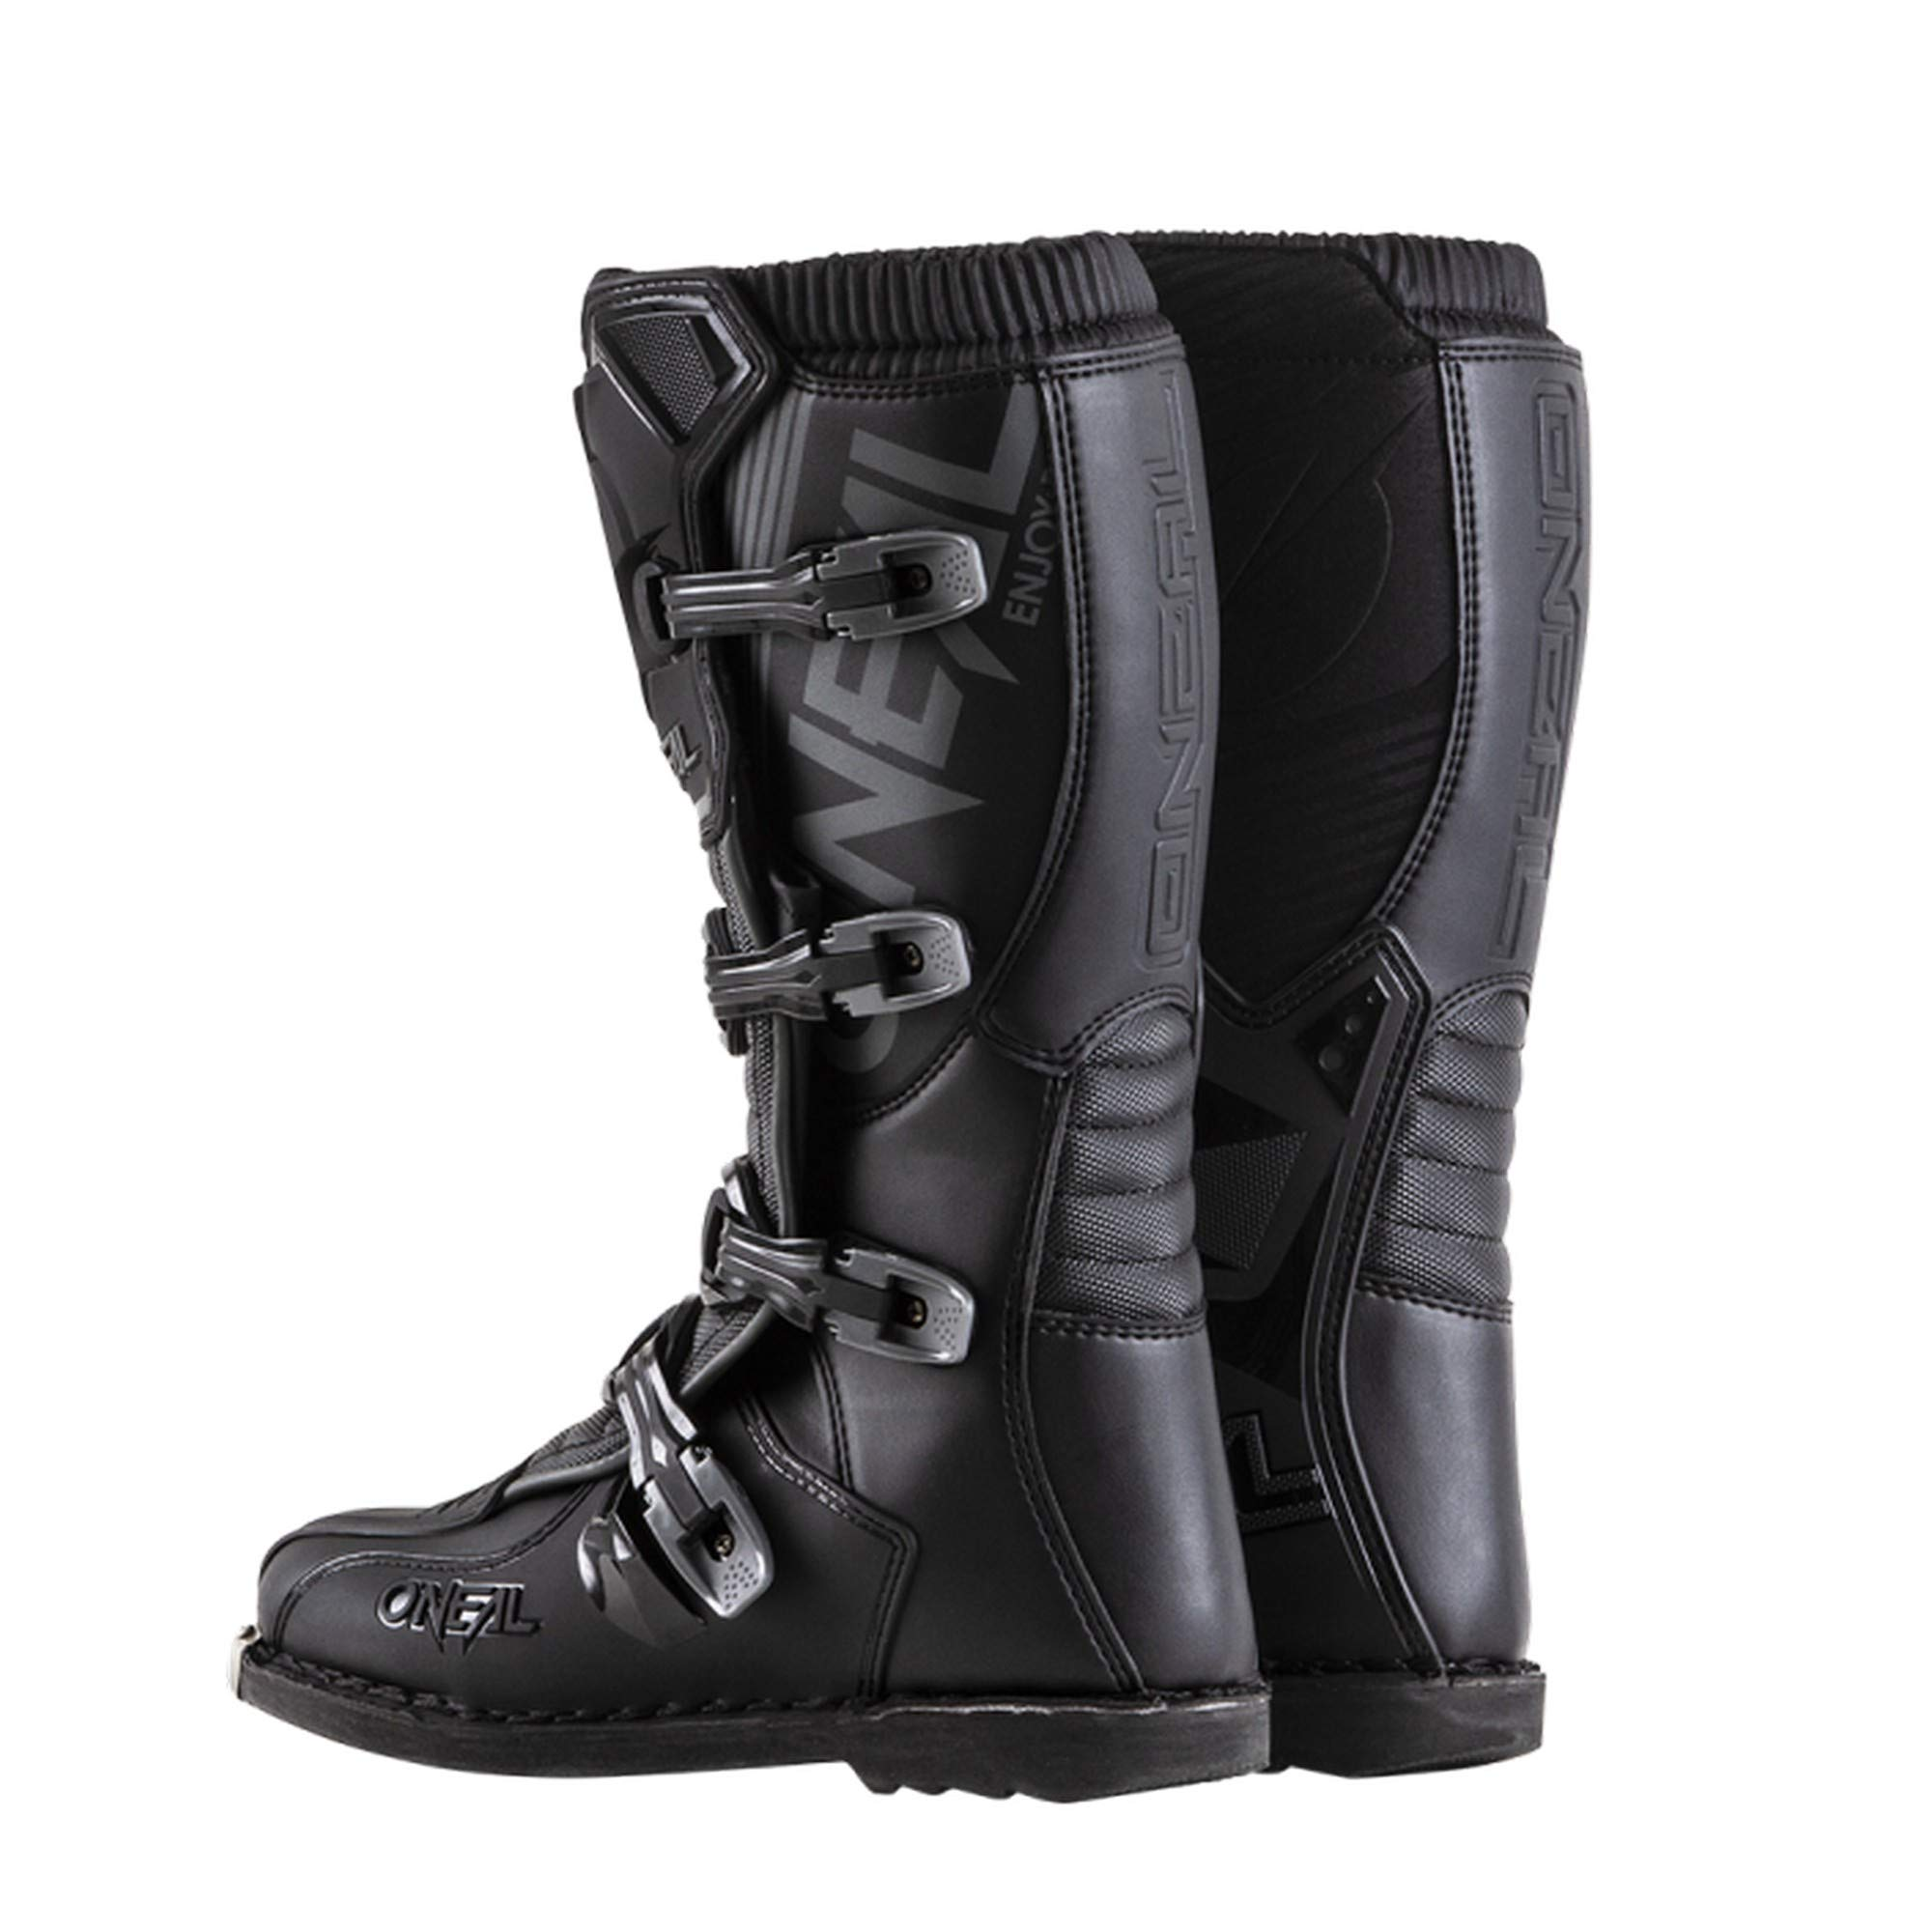 O'Neal 2019 Element Boots (14) (Black) by O'Neal (Image #2)